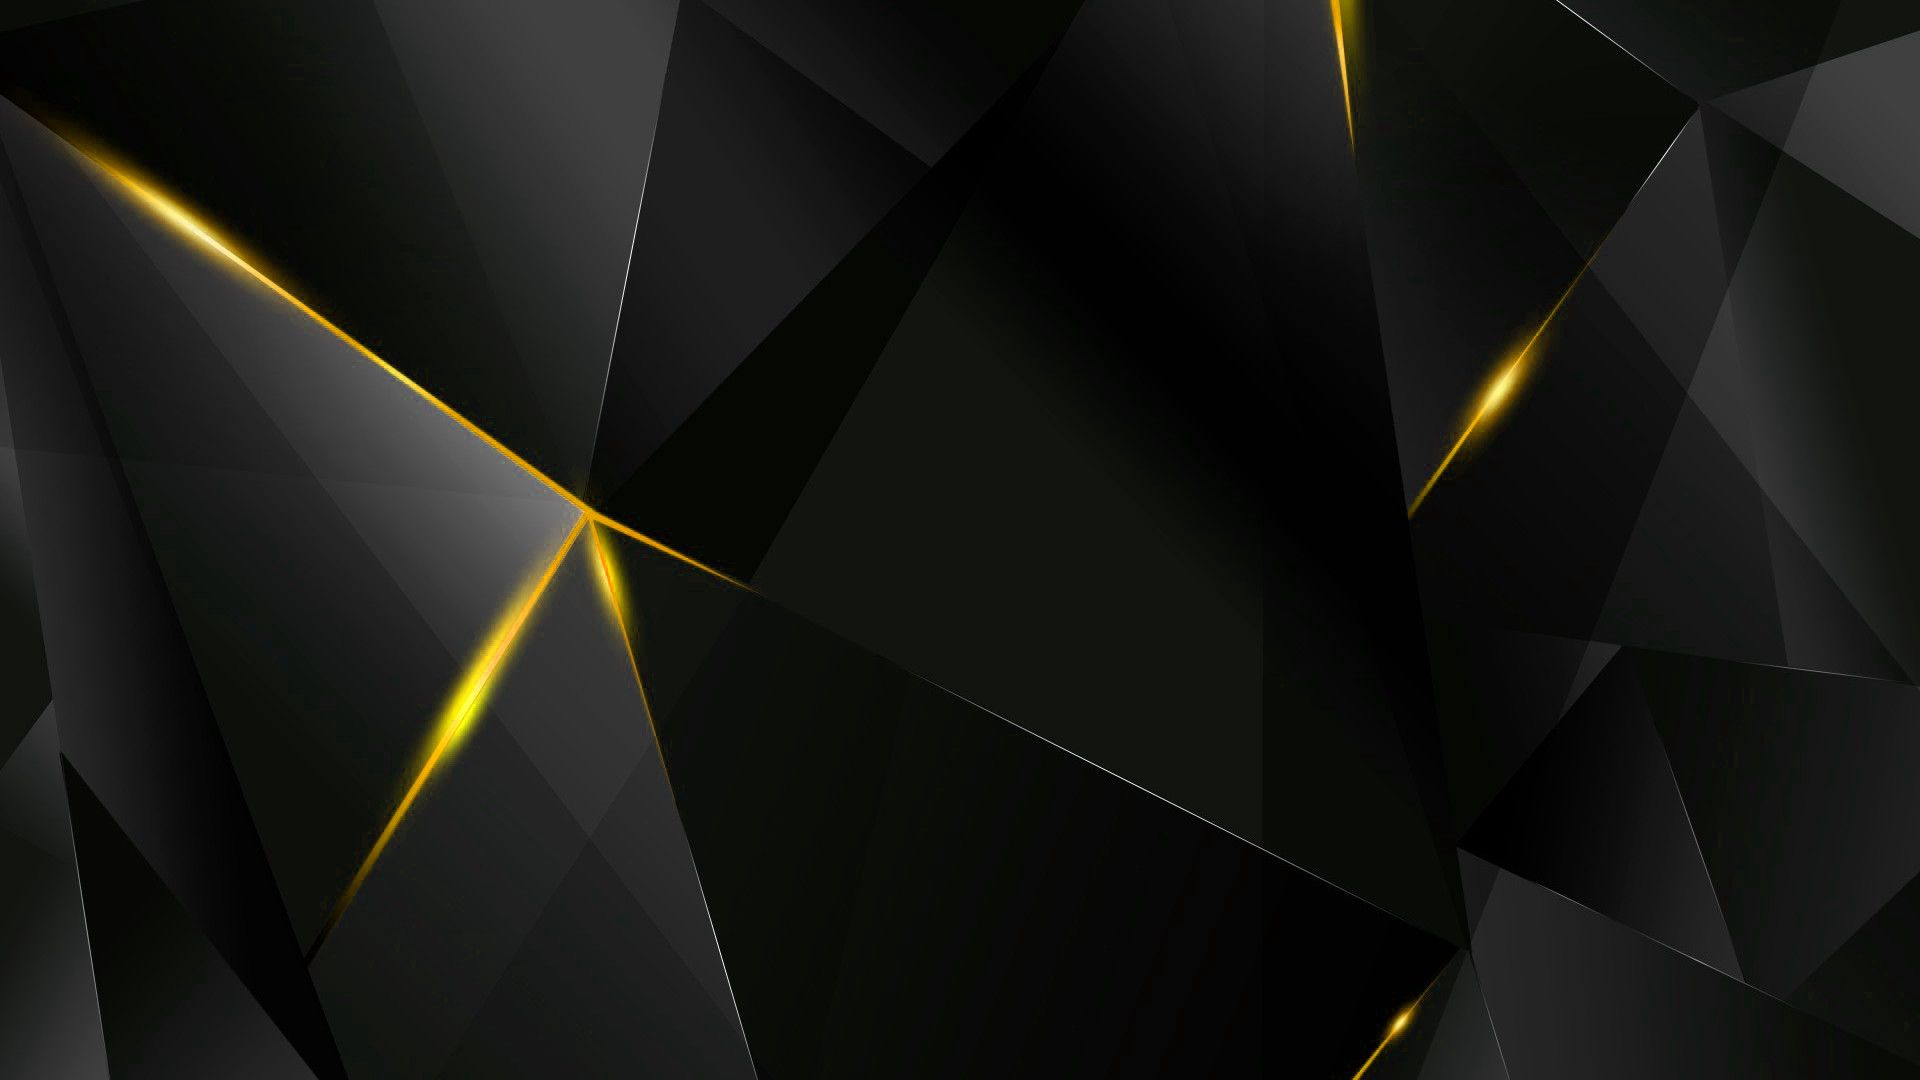 Abstract Black And Yellow Wallpaper